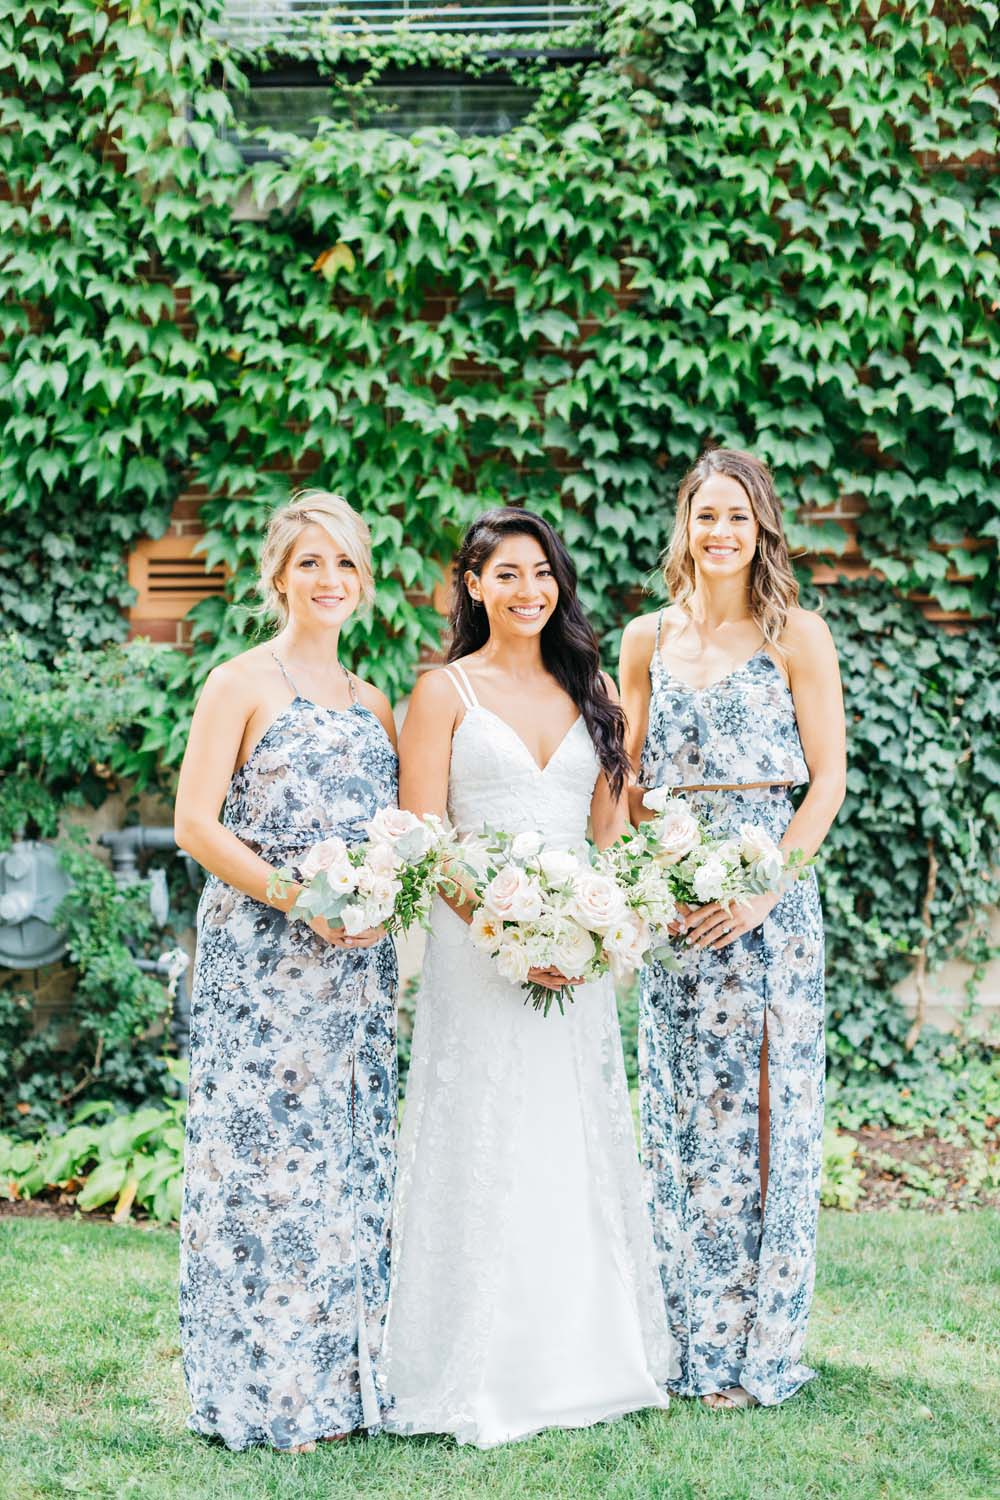 A Bright and Airy September Wedding in Toronto, Ontario - Bride and Bridesmaids